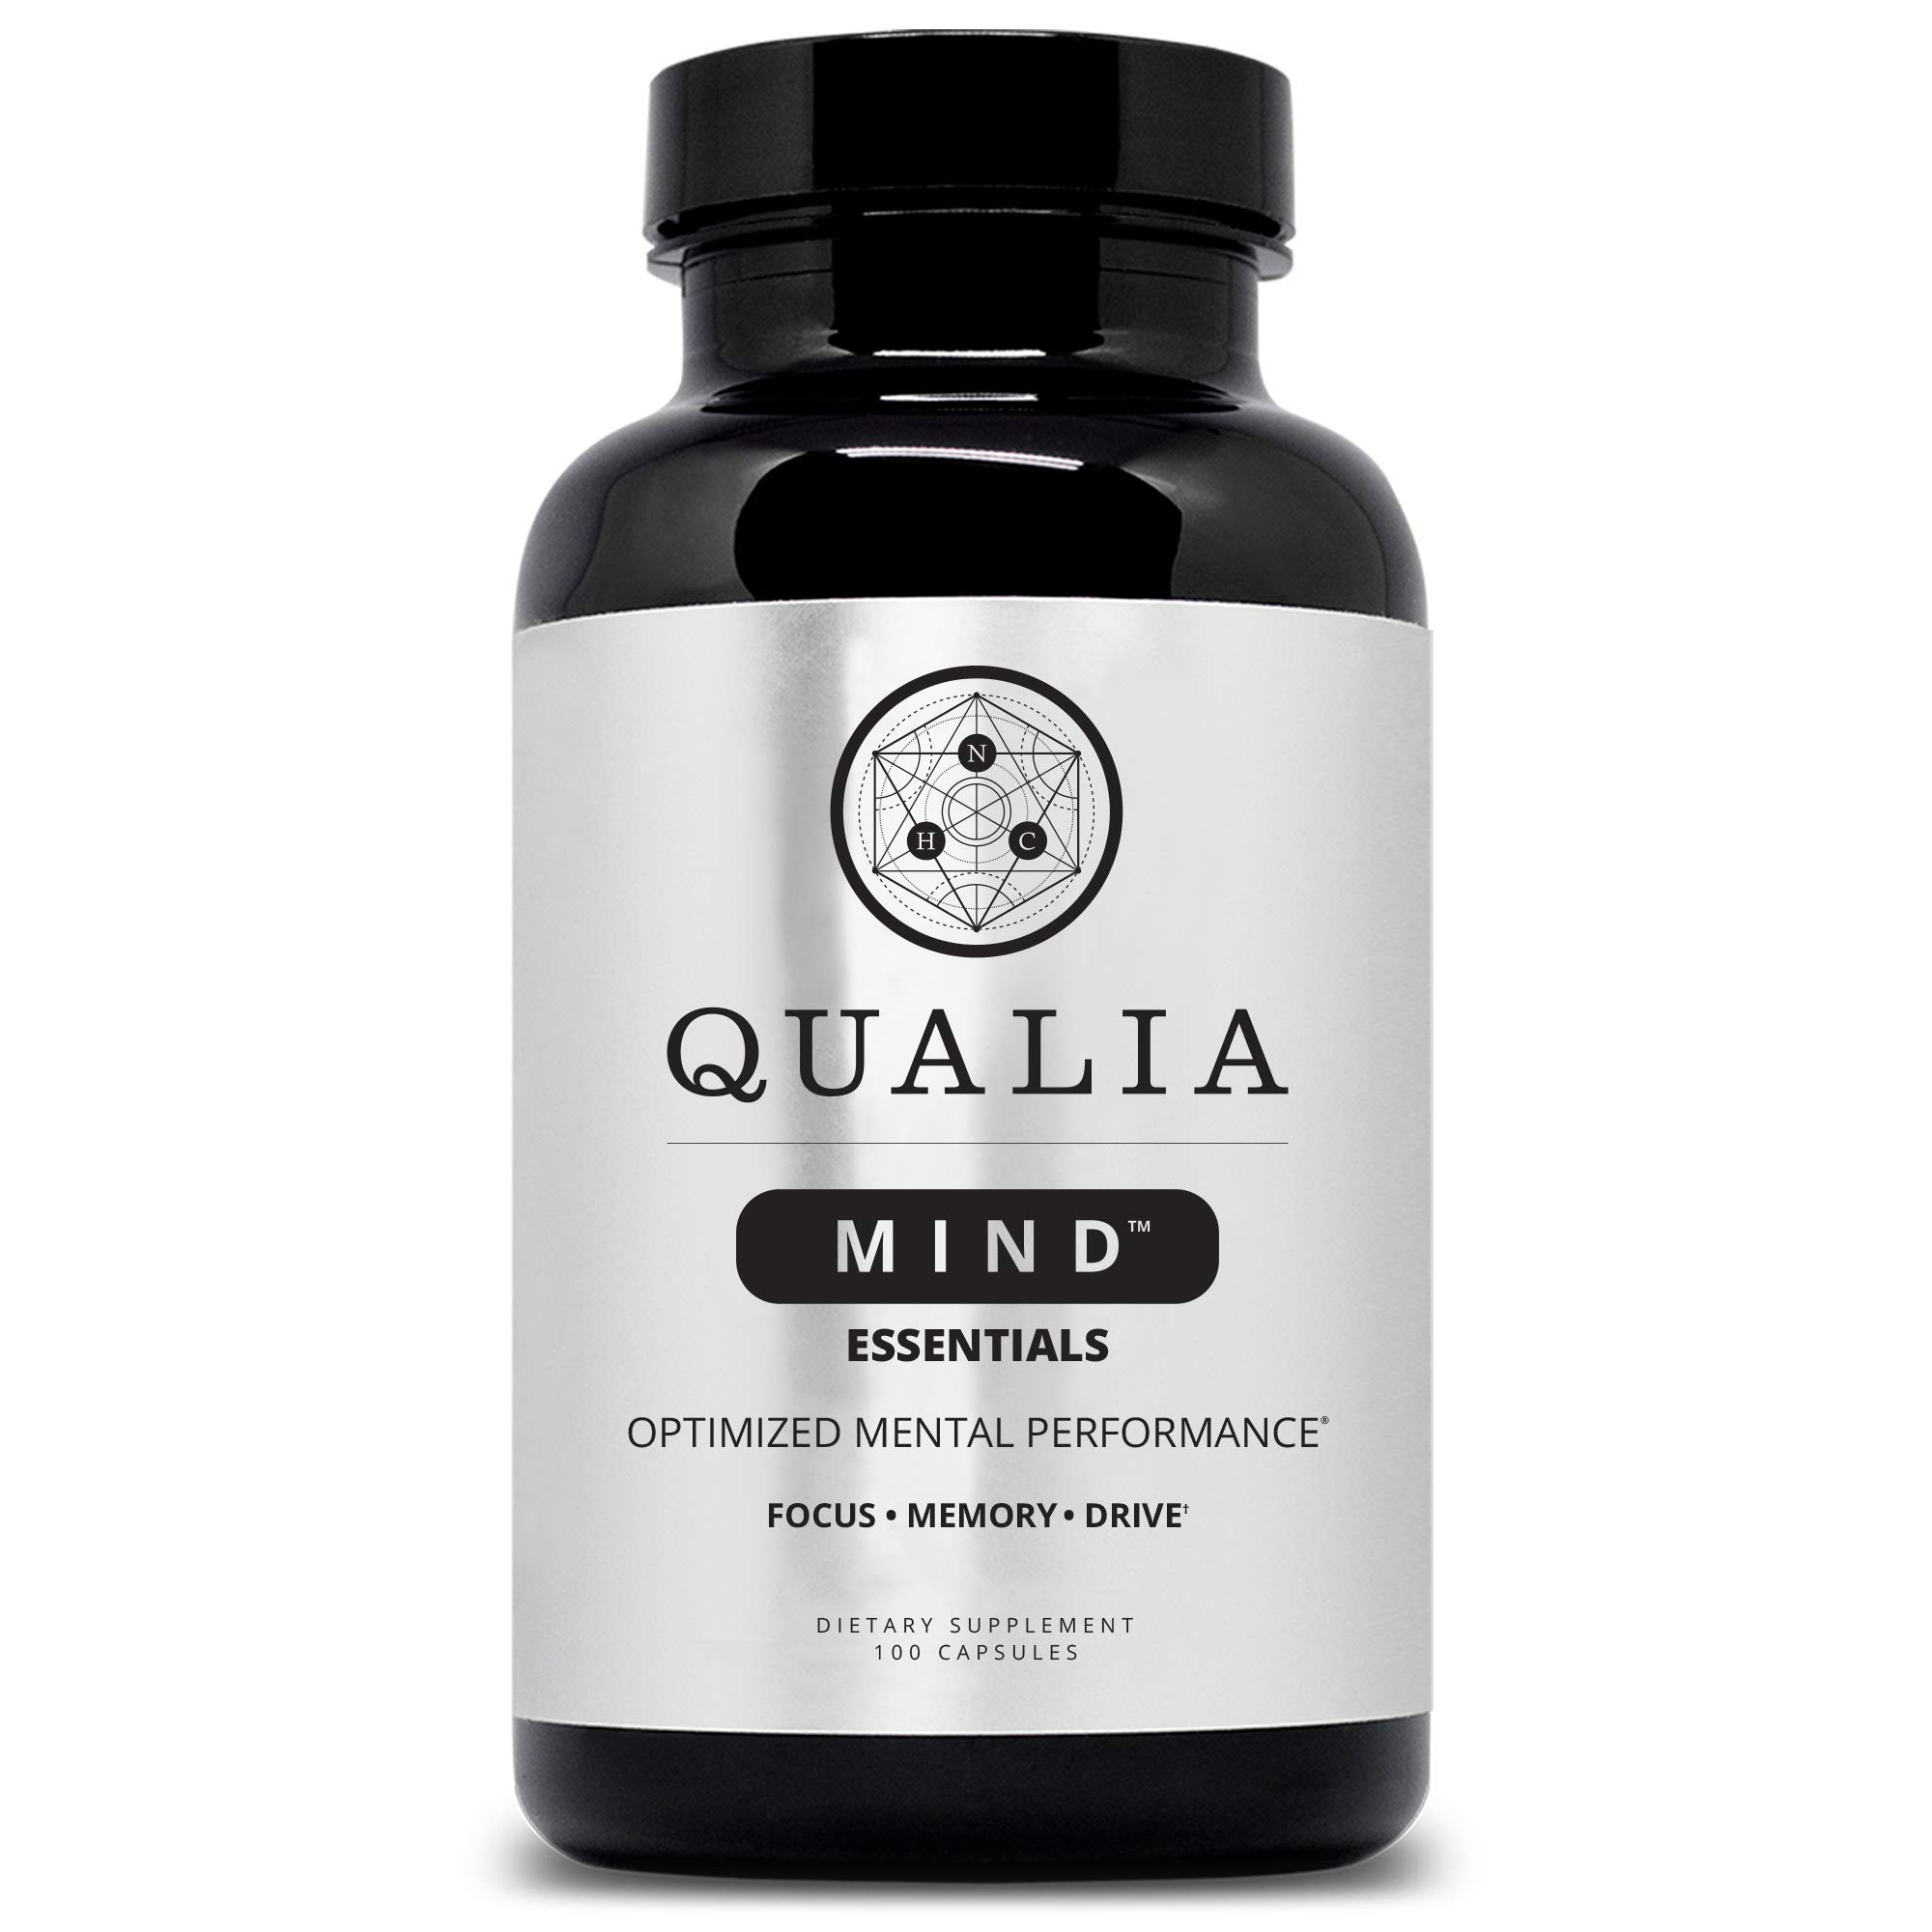 Qualia Mind Essentials Nootropics 100ct | The Brain Supplement for Focus, Supporting Memory, Mental Clarity, Energy, Reasoning, and Concentration with Ginkgo biloba, Bacopa monnieri, Celastrus